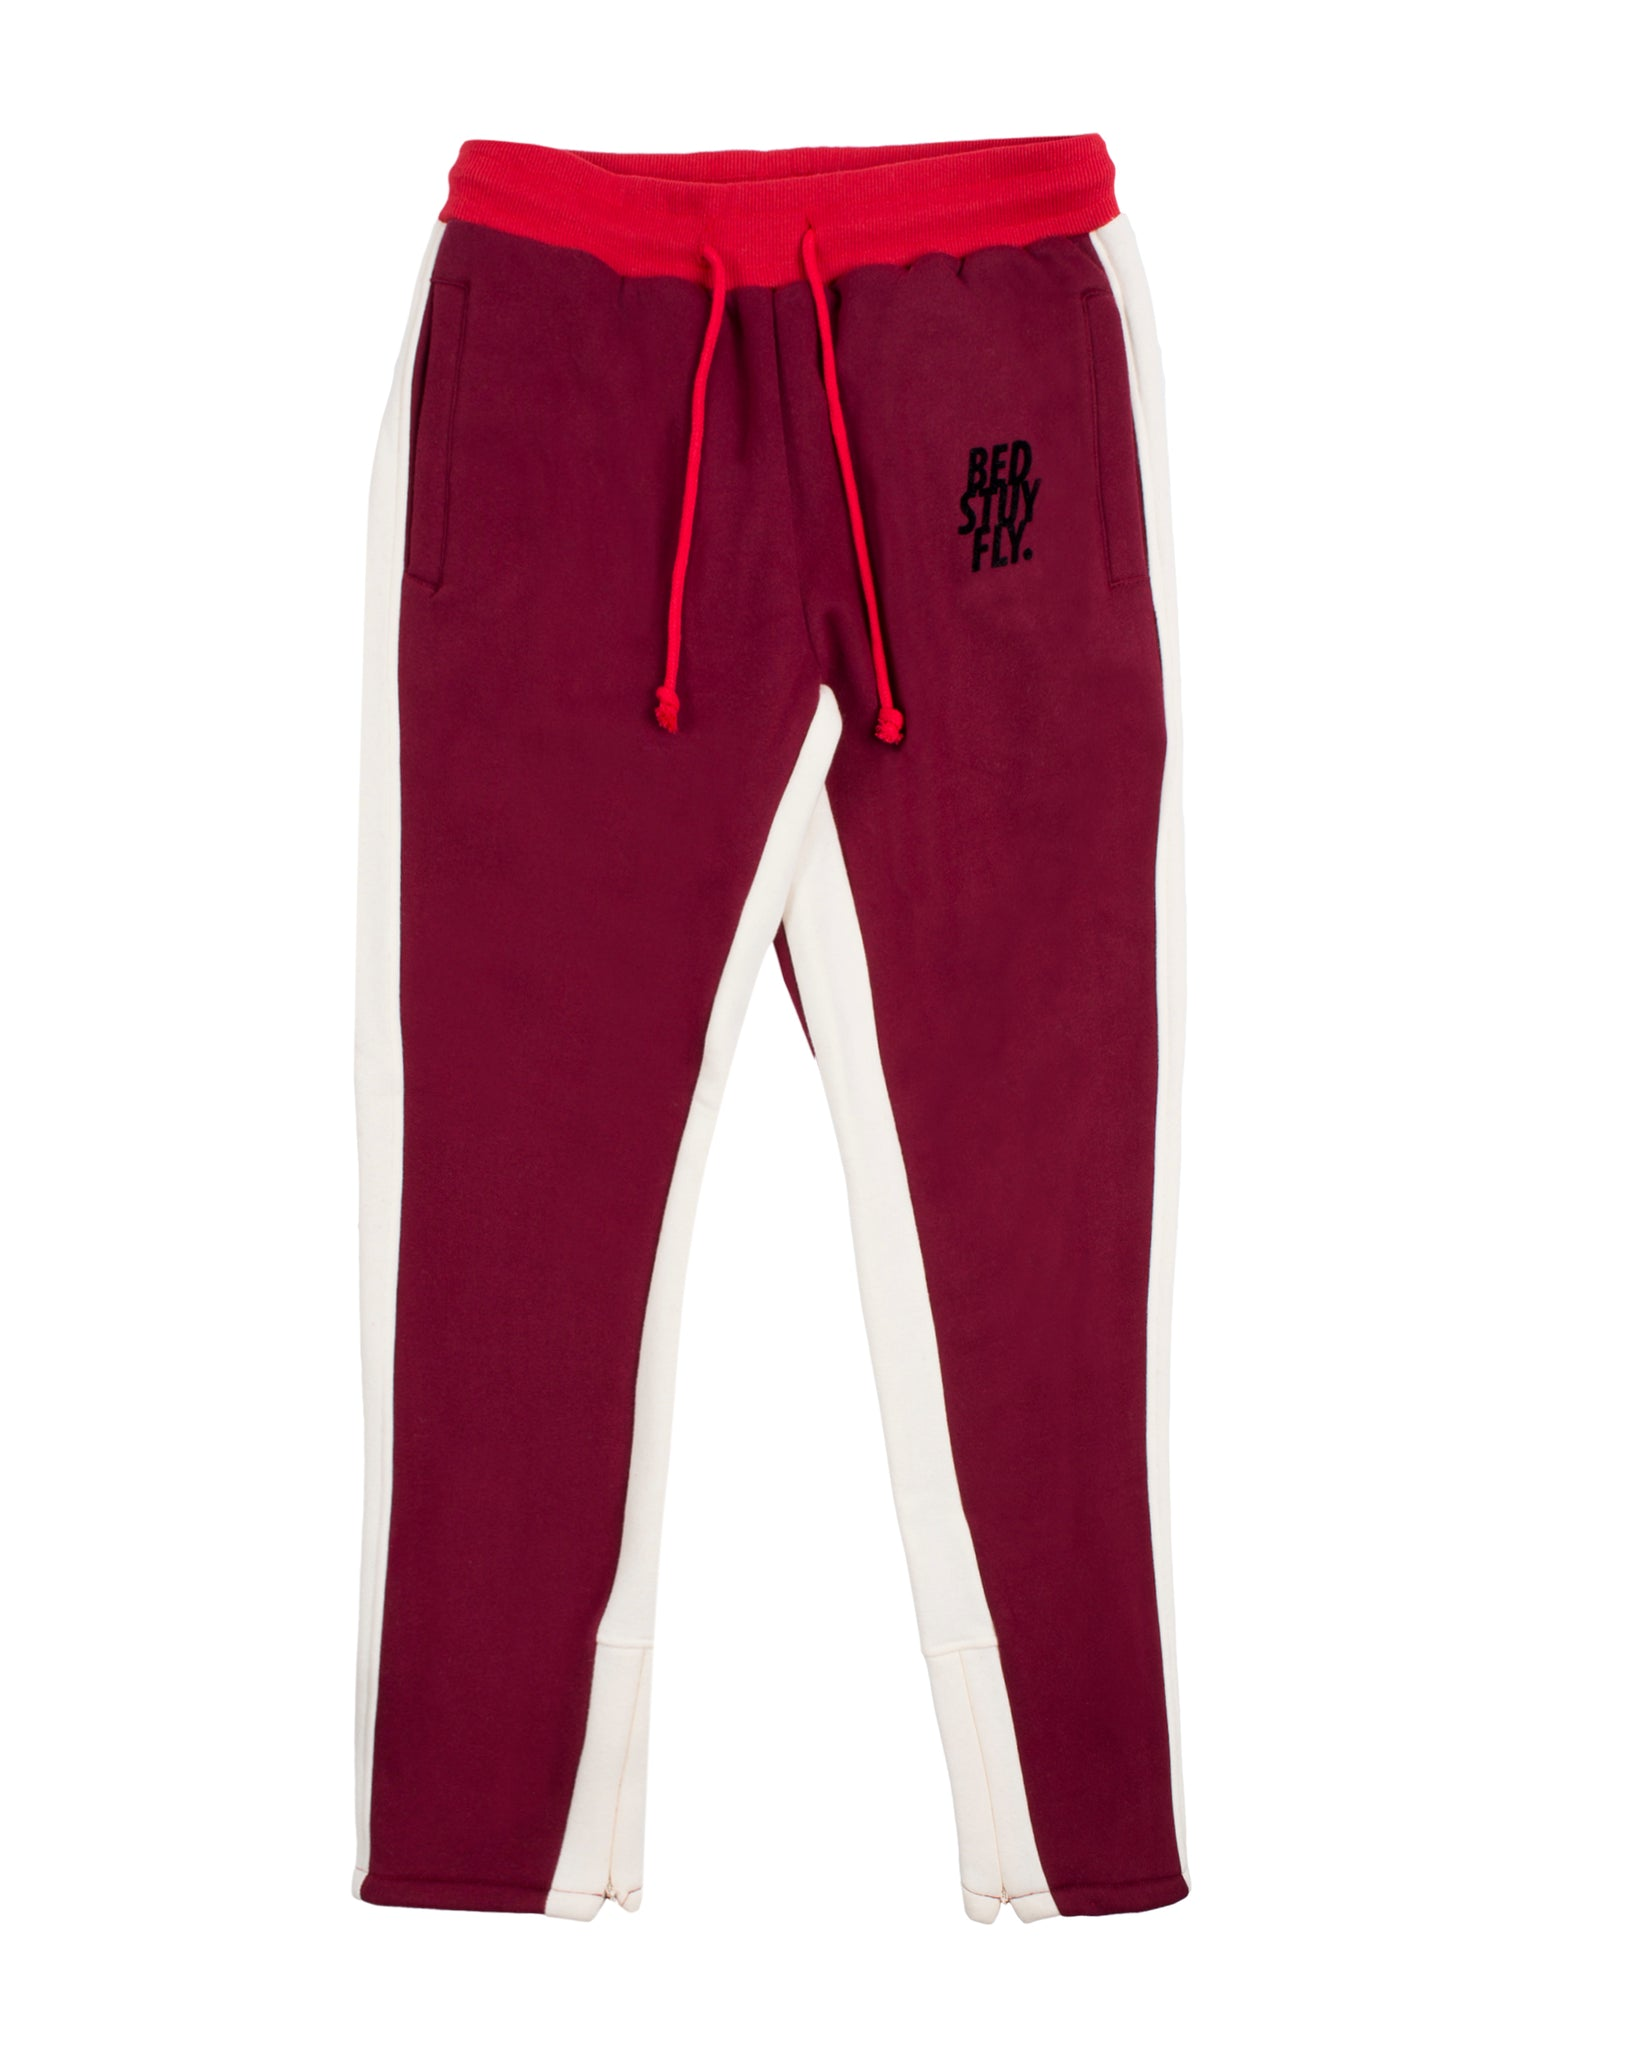 Local Sweatpants (Bur)